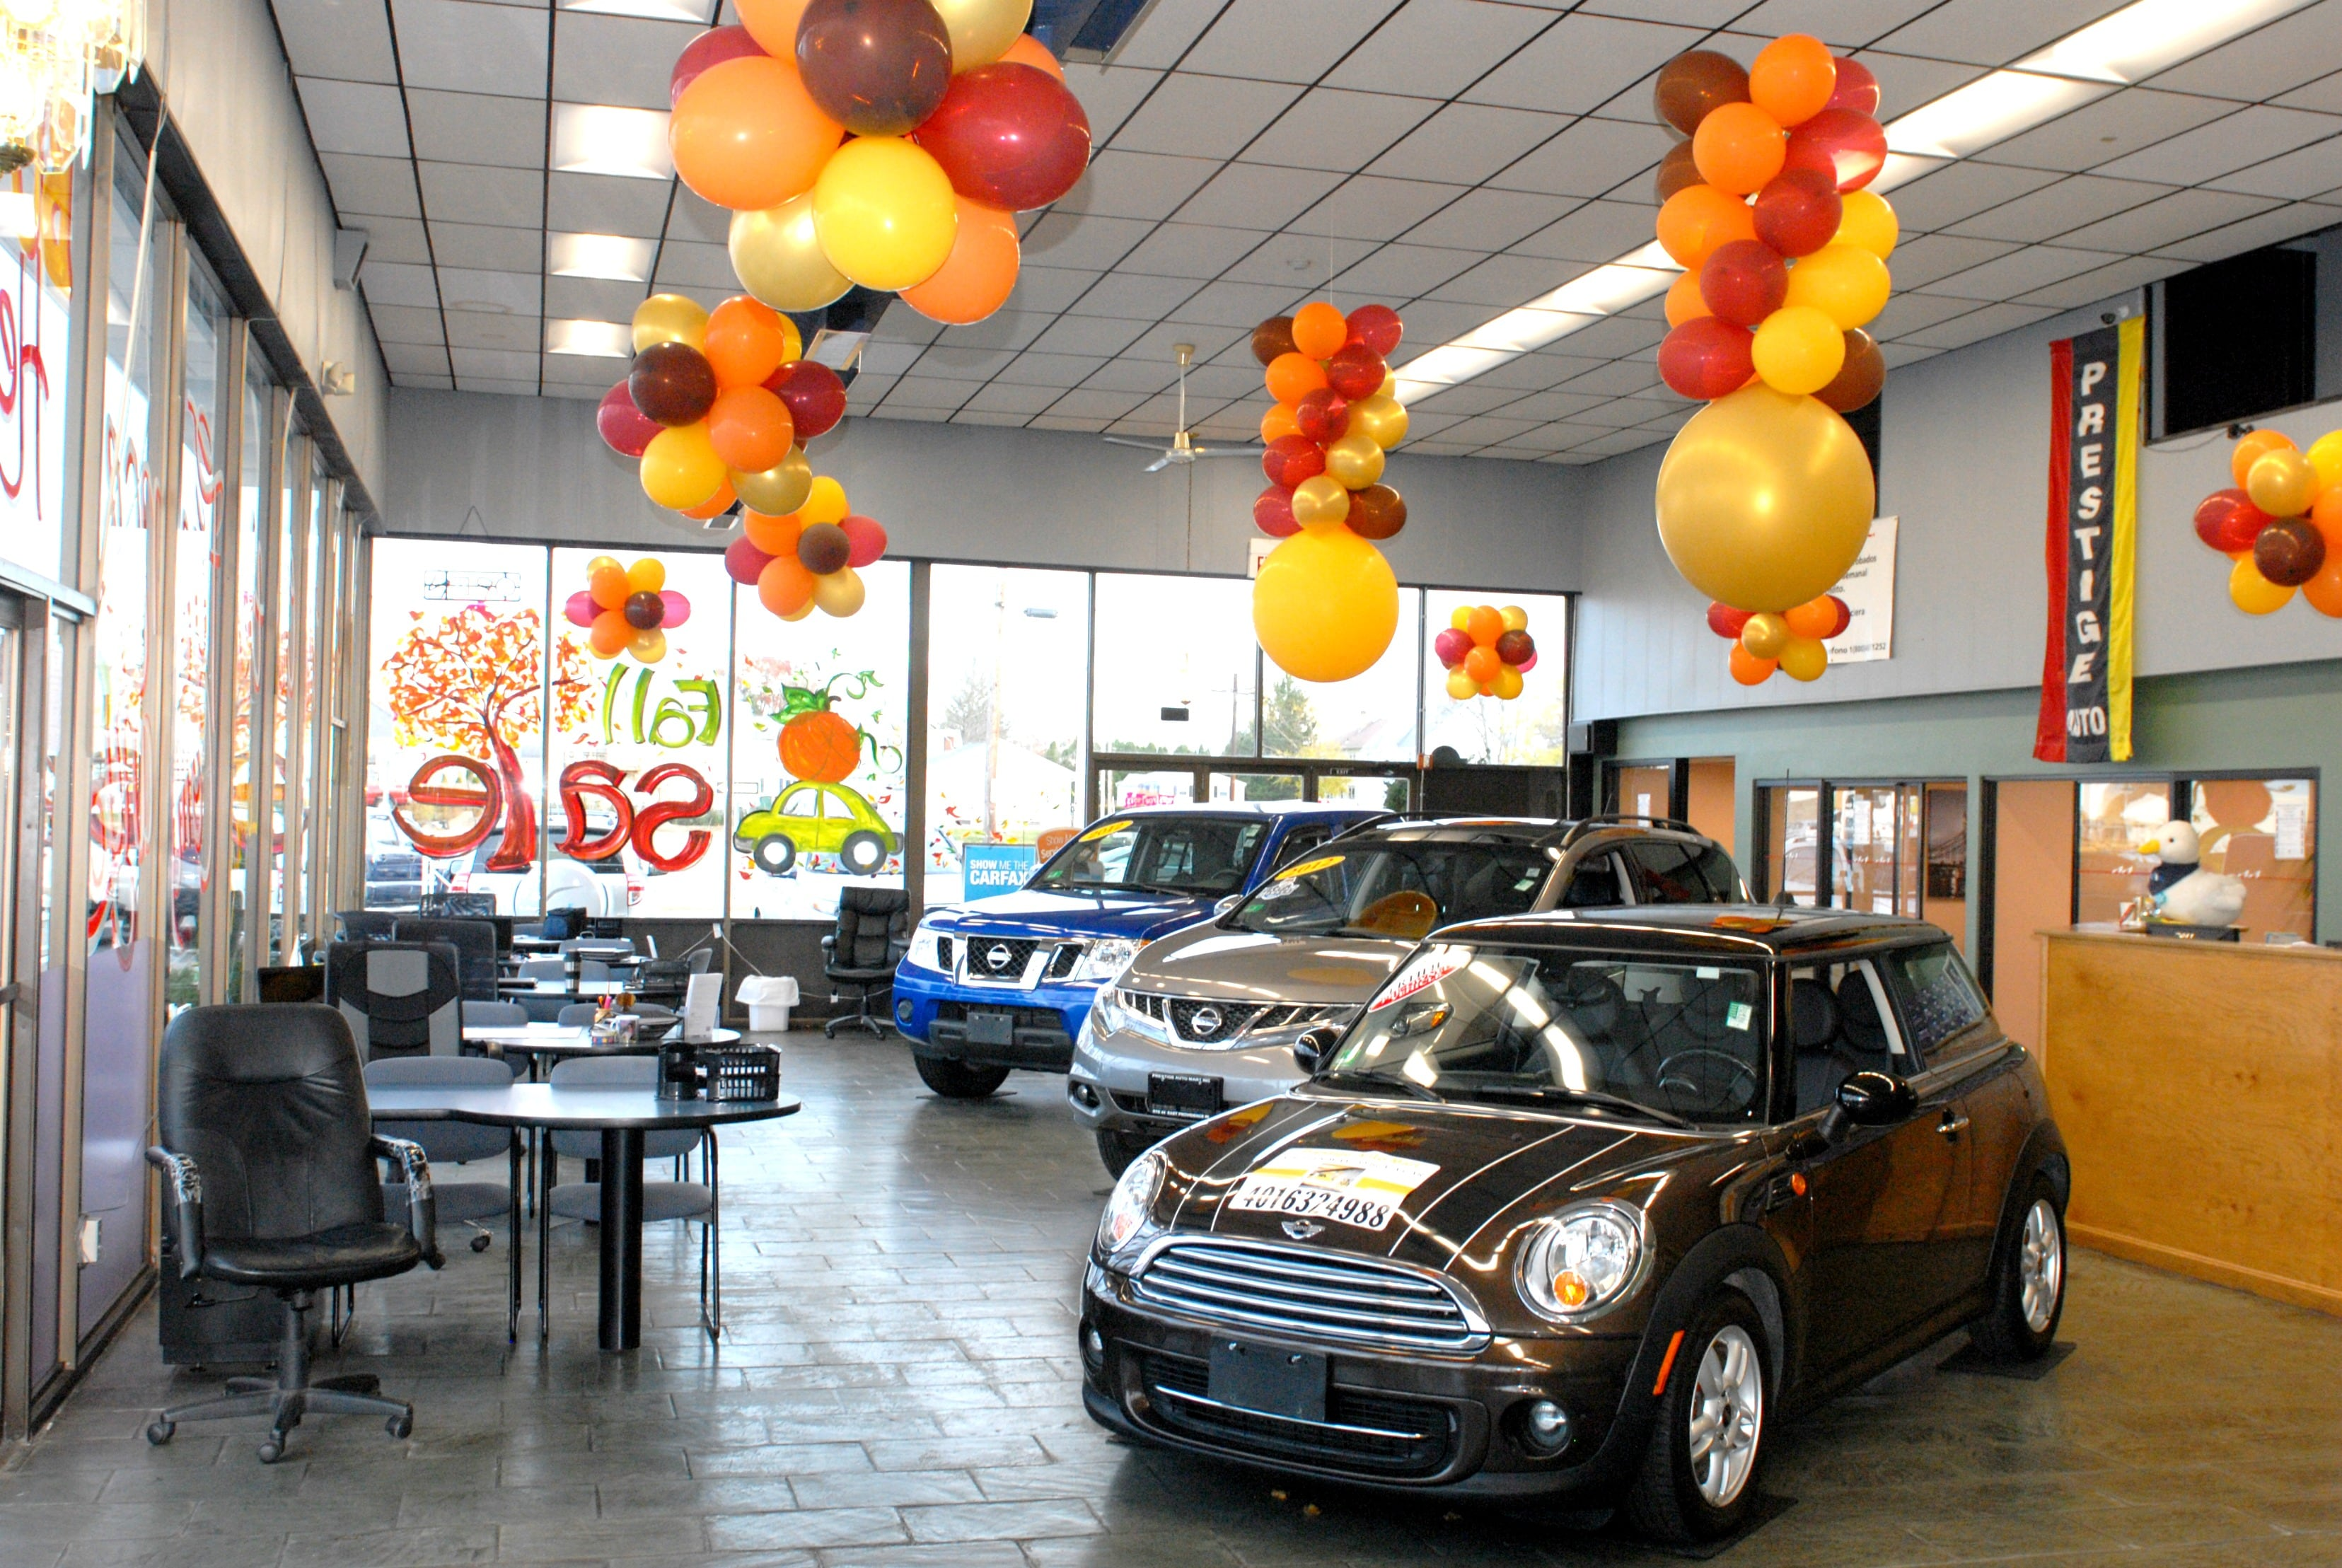 Prestige auto mart e providence ri in east providence ri used car dealership near providence Prestige motors warwick